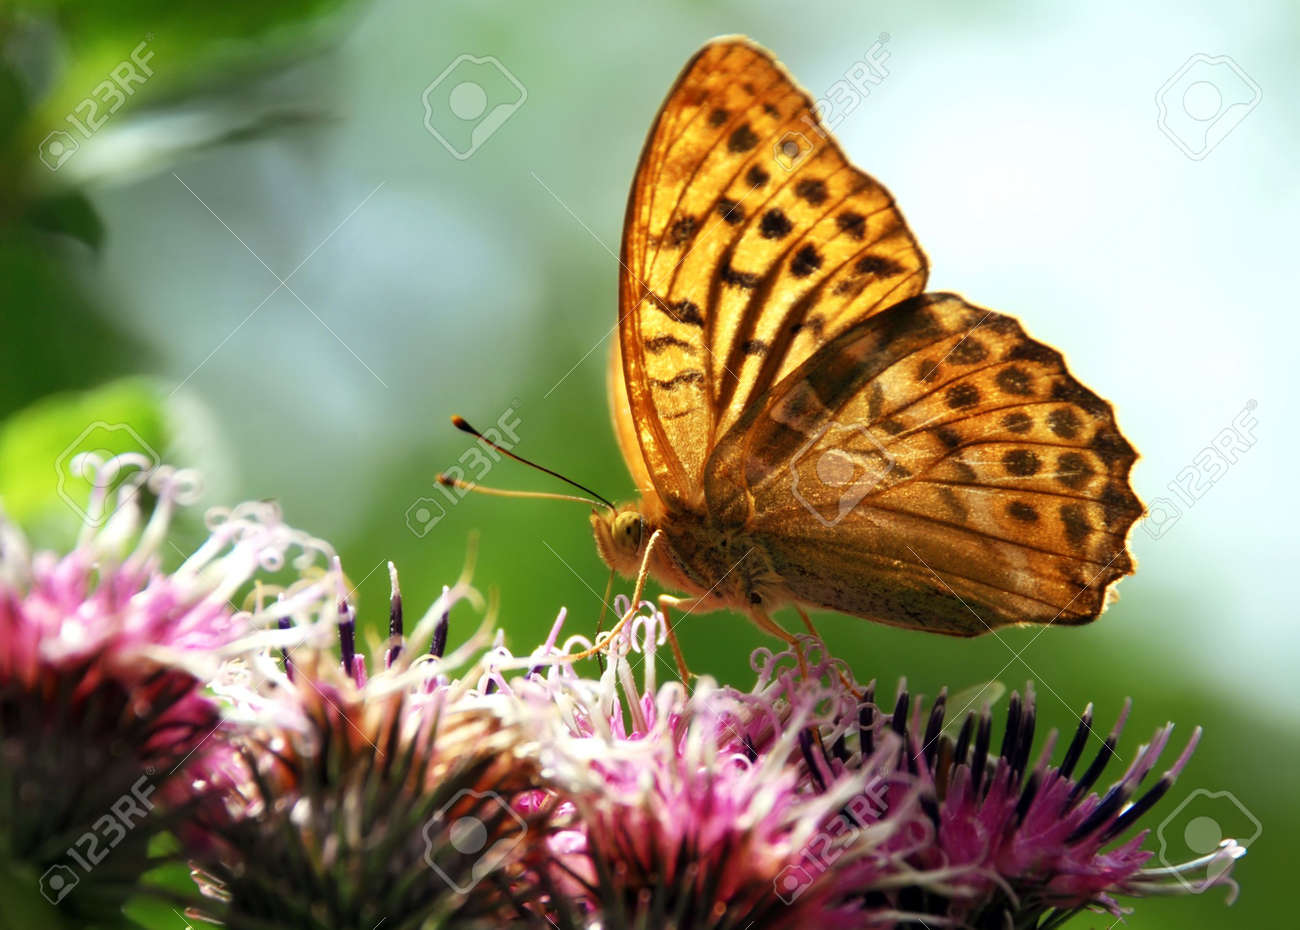 beautiful nature scene butterfly on flower stock photo picture